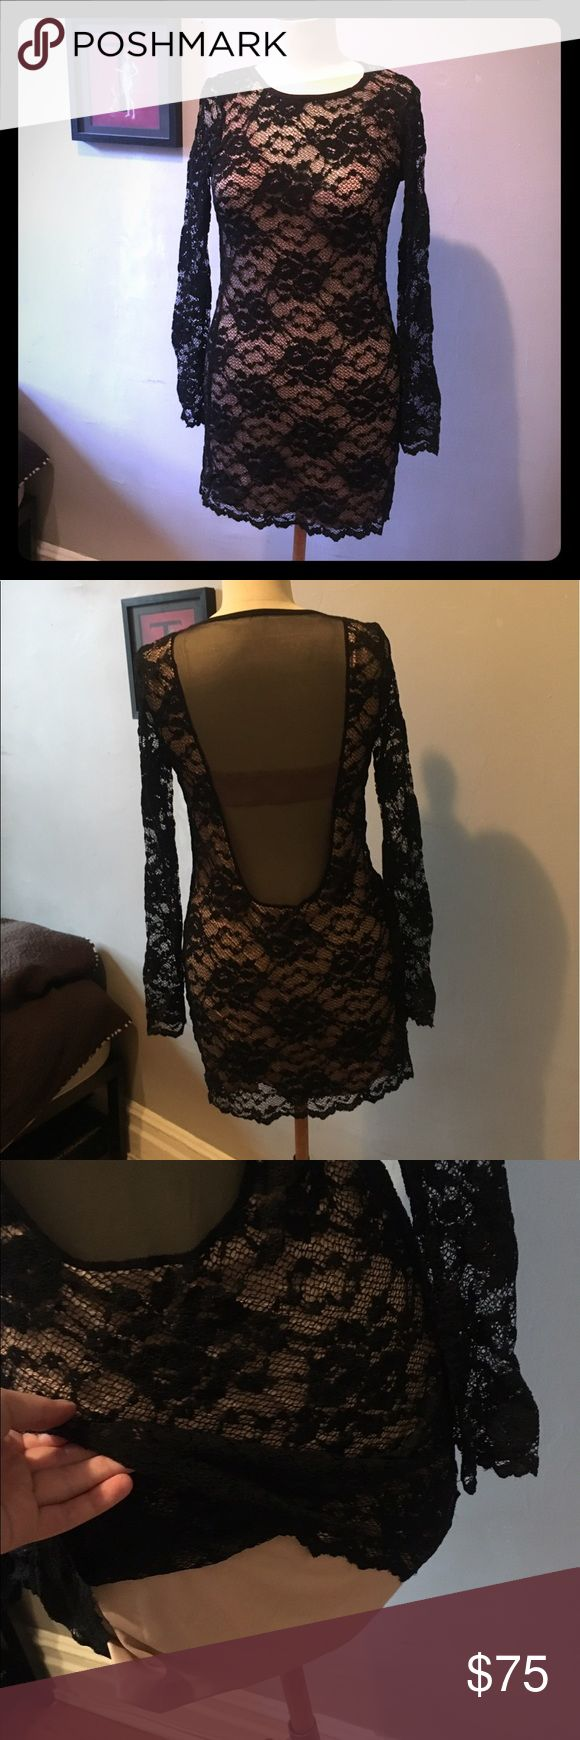 Sexy lace dress Vintage Britney Spears style. Black lace with a nude underdress and a see-through back. Never worn Dresses Backless